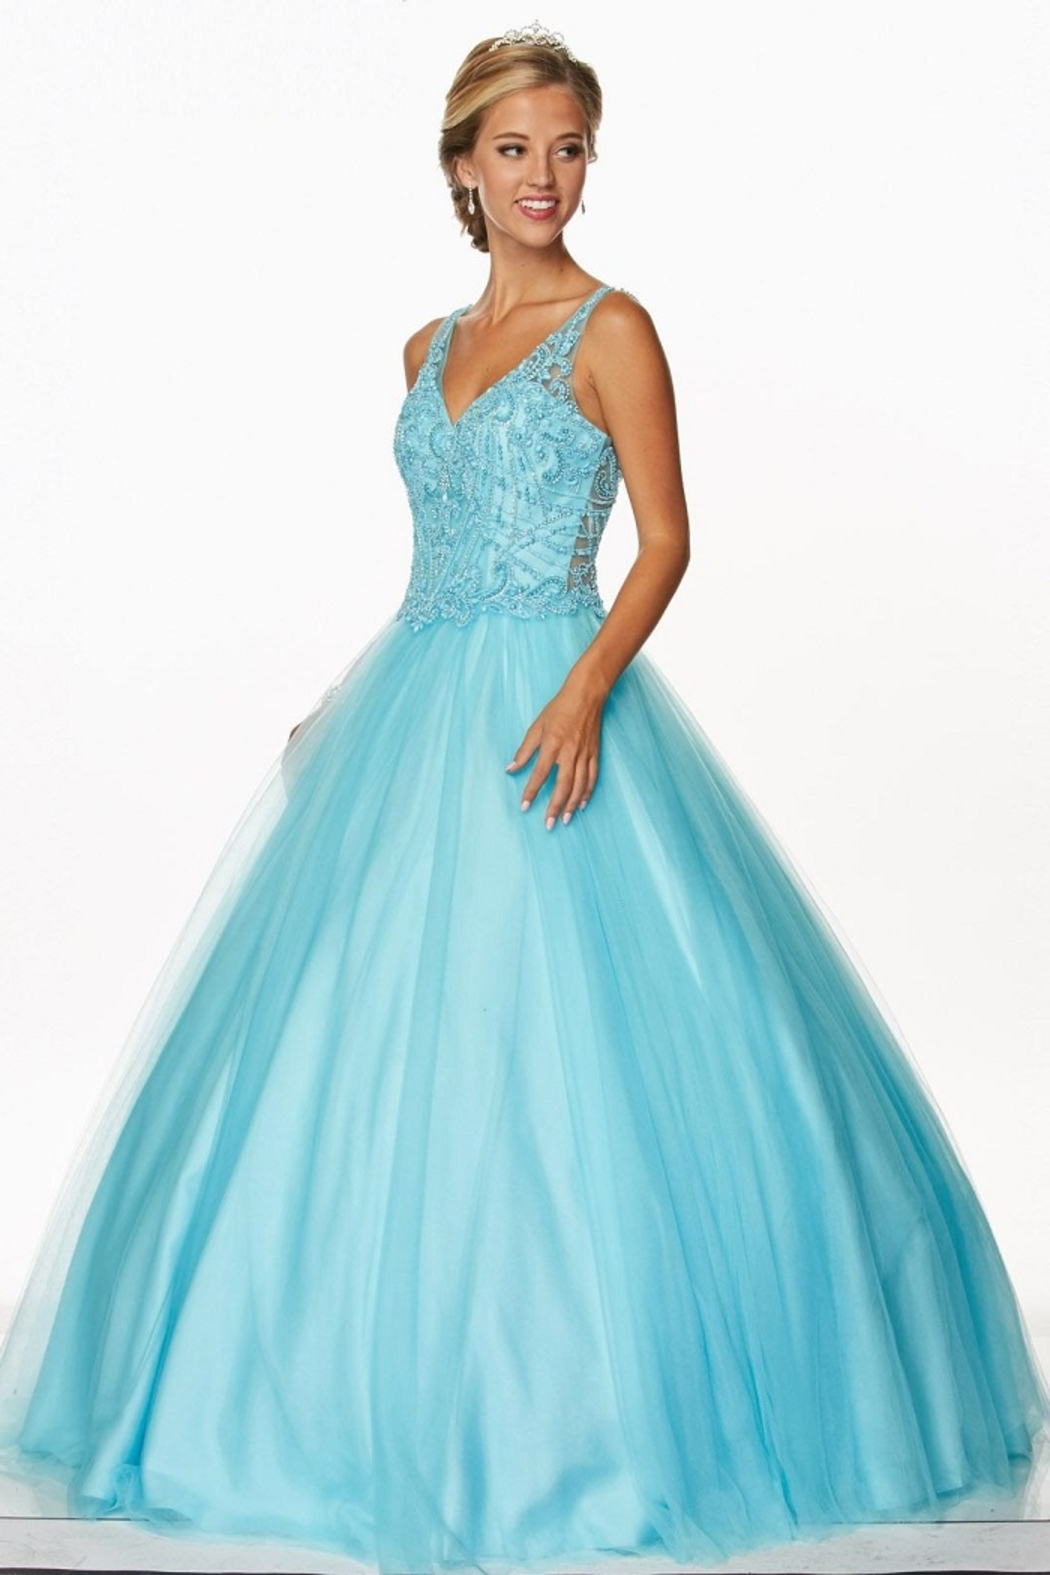 Juliet Turquoise Beaded Formal Ball Gown - Main Image